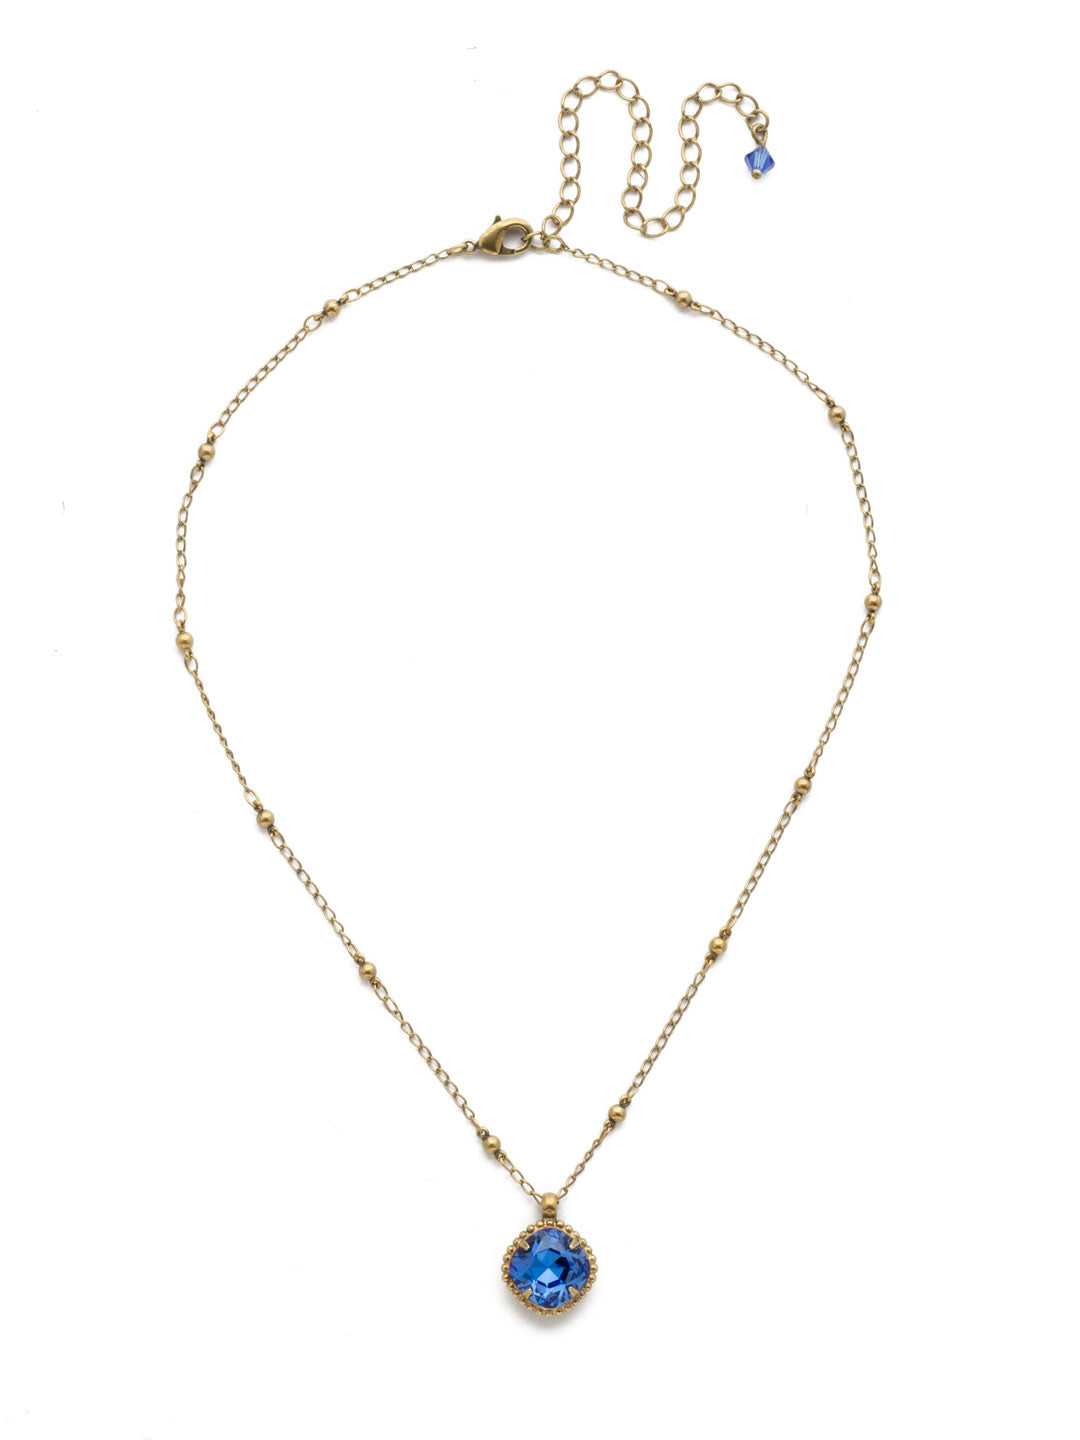 Cushion-Cut Solitaire Necklace - Sorrelli Essentials - NDS50AGSAP